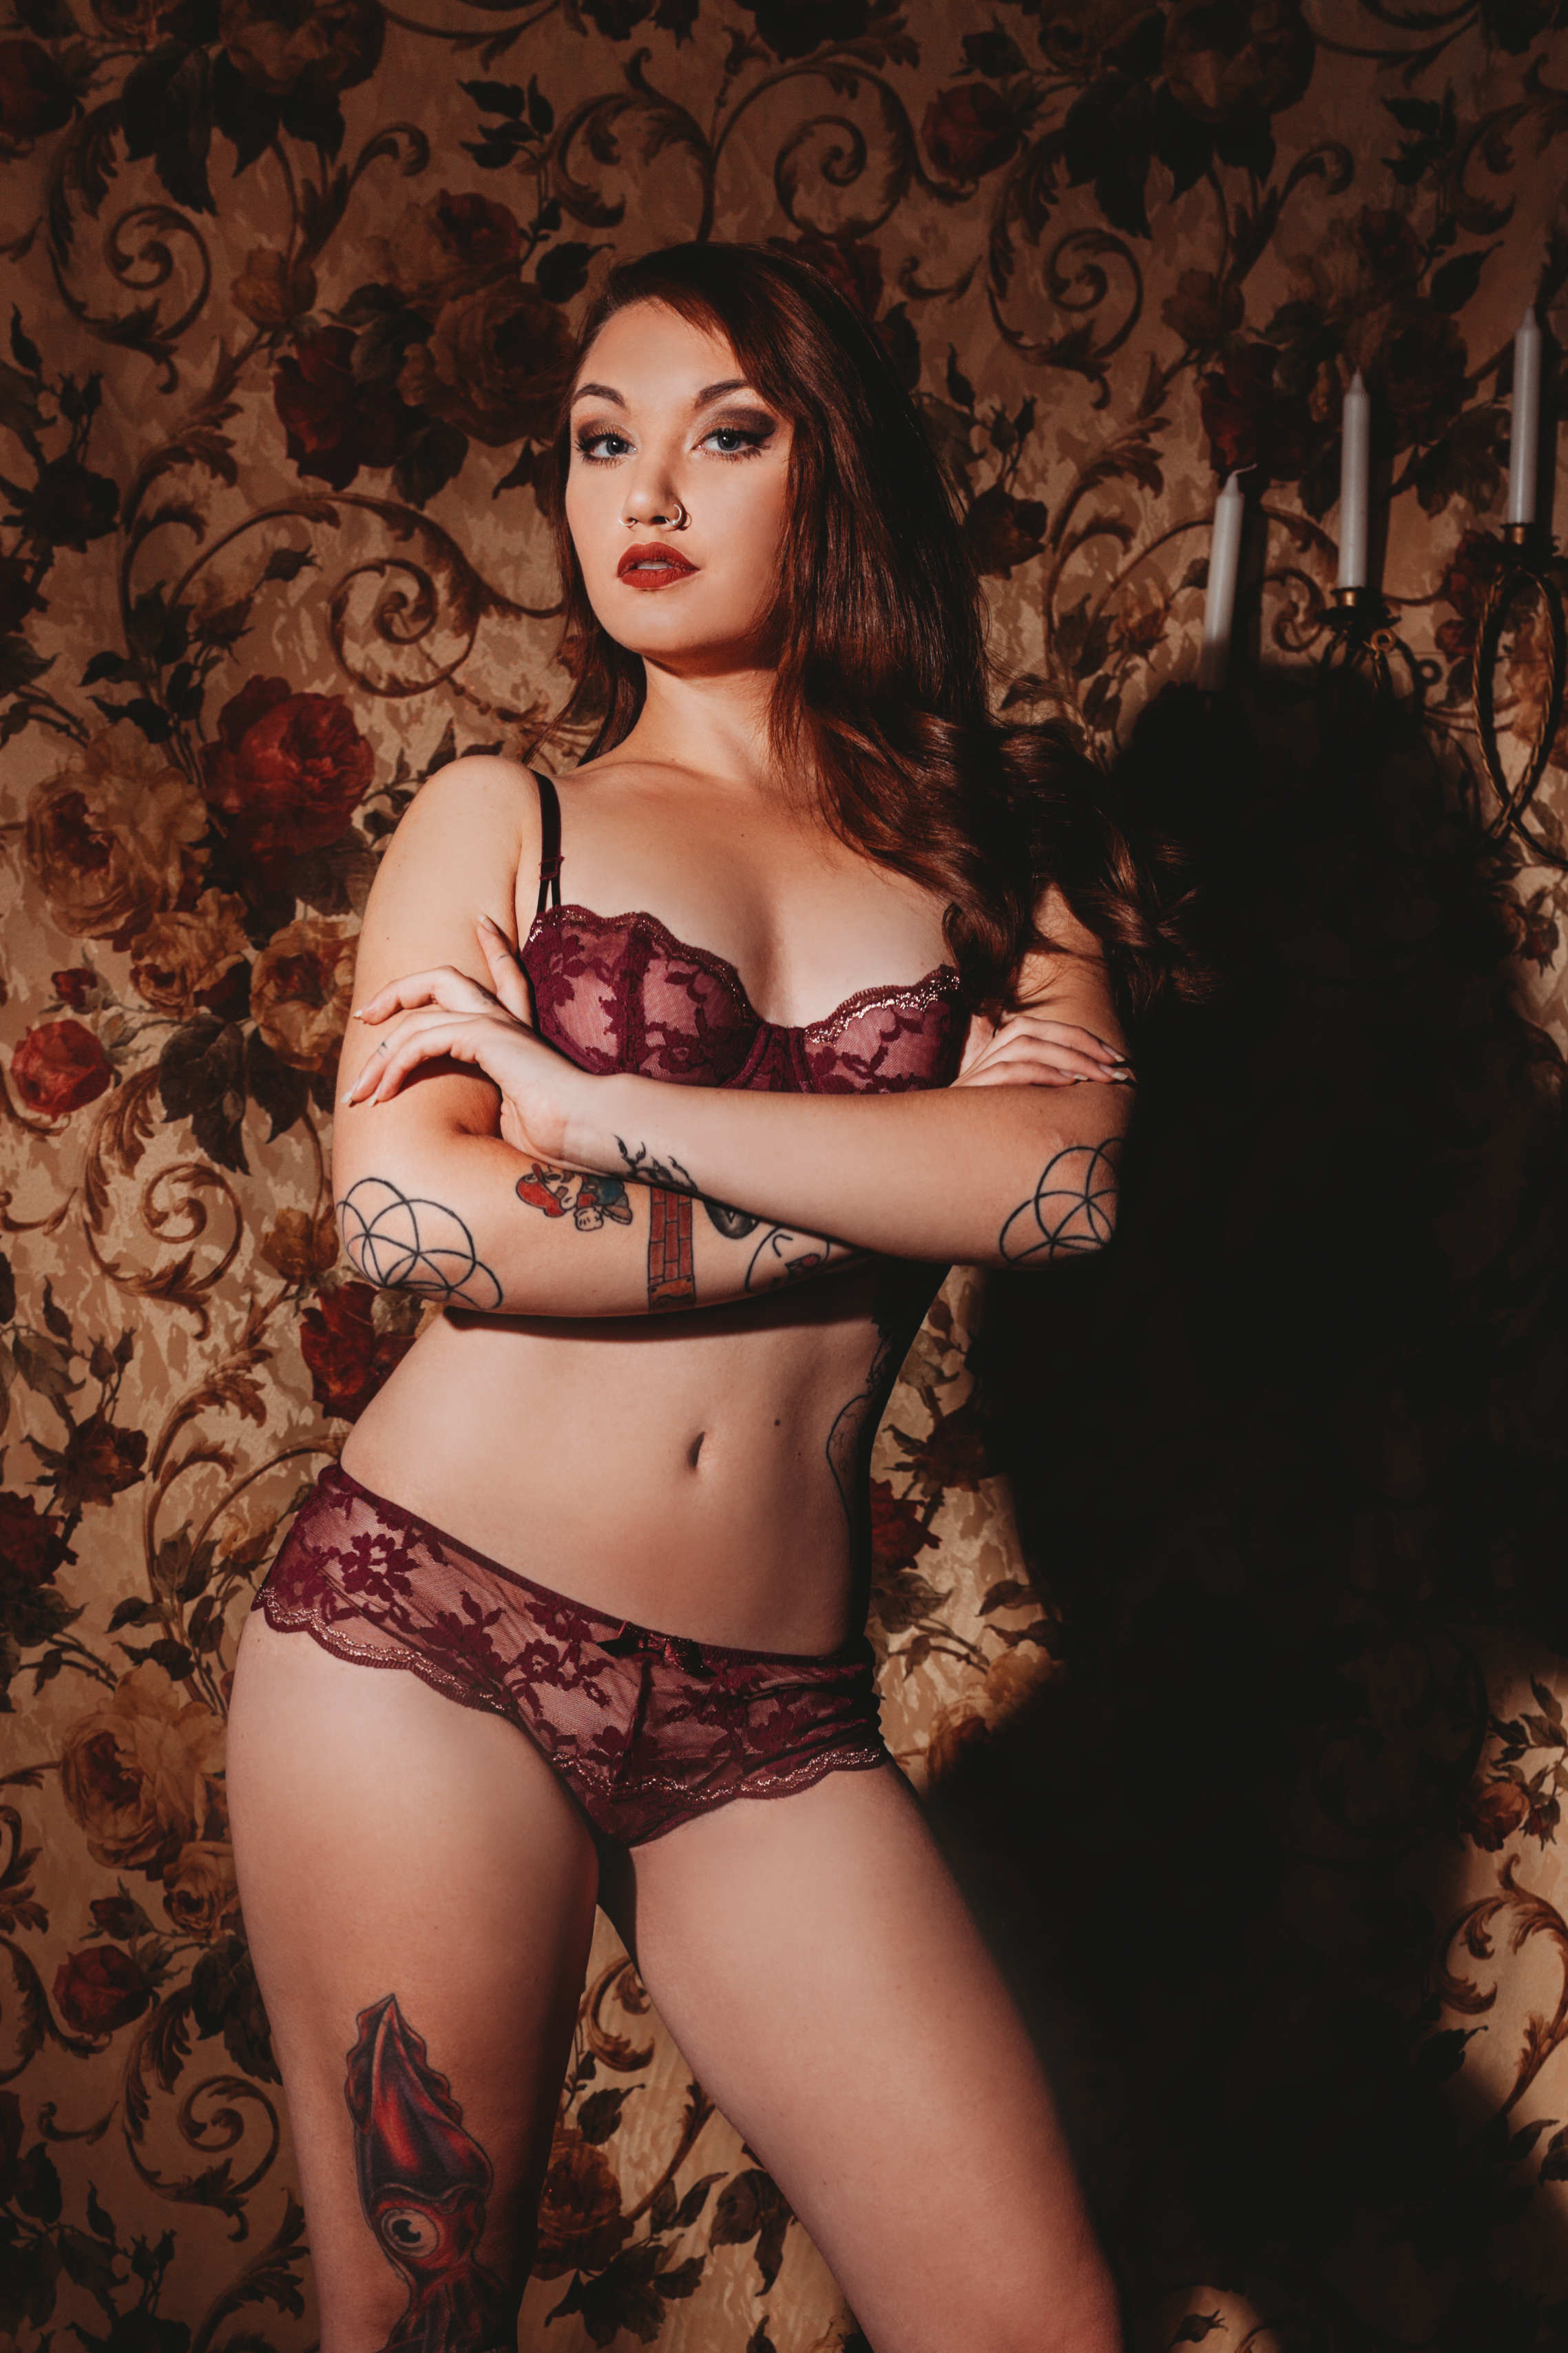 A M Photography_Cheyenne WY_Boudoir Session_sexy and empowering_IMG_0626.JPG